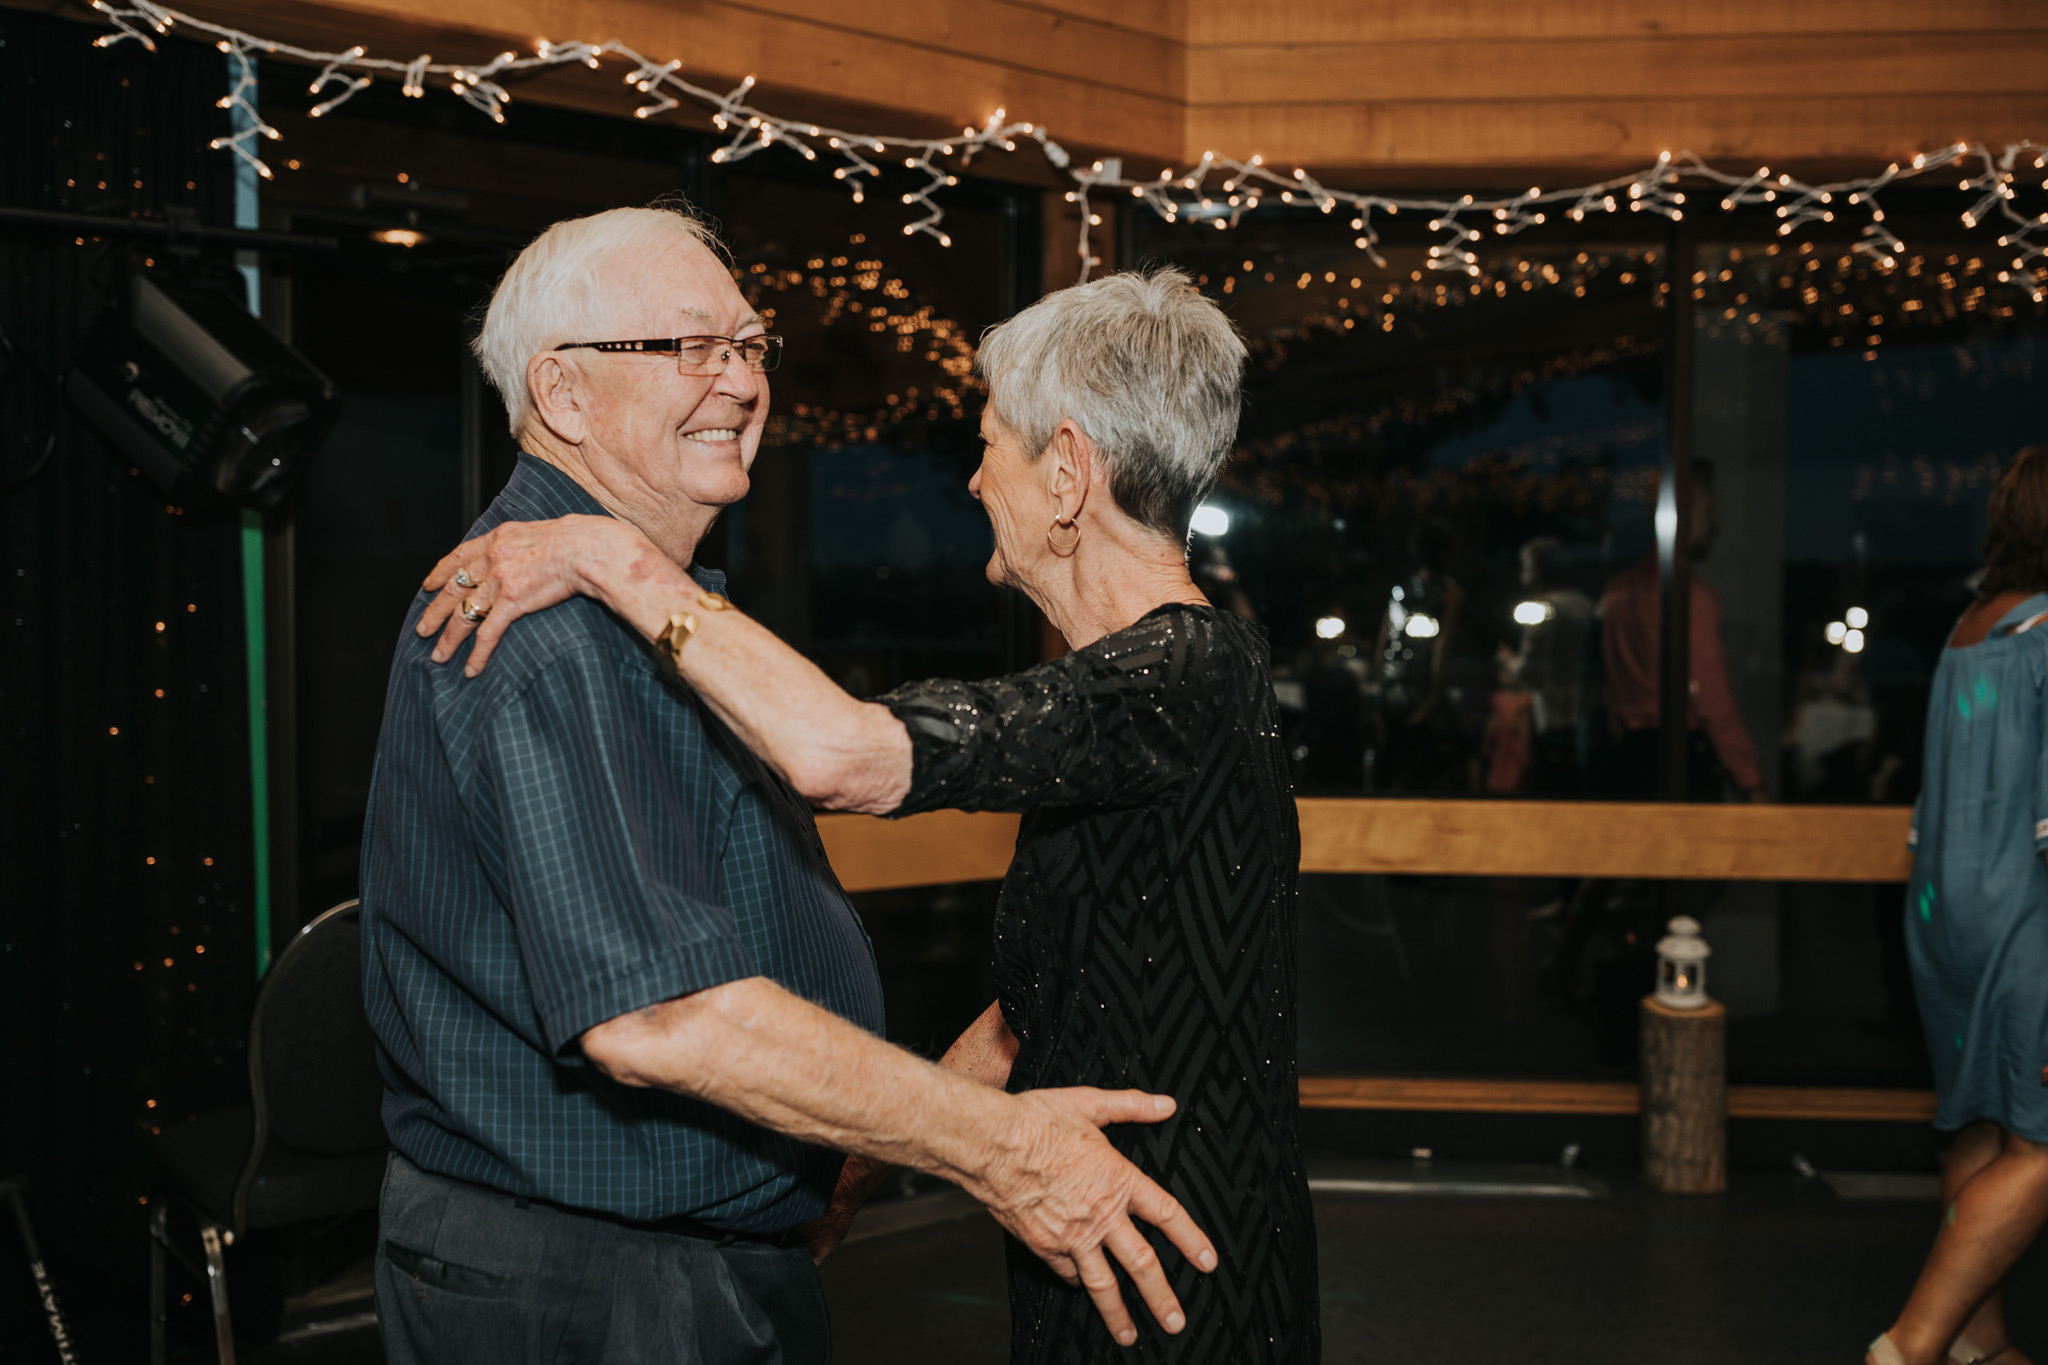 elderly couple dancing smiling at wedding reception